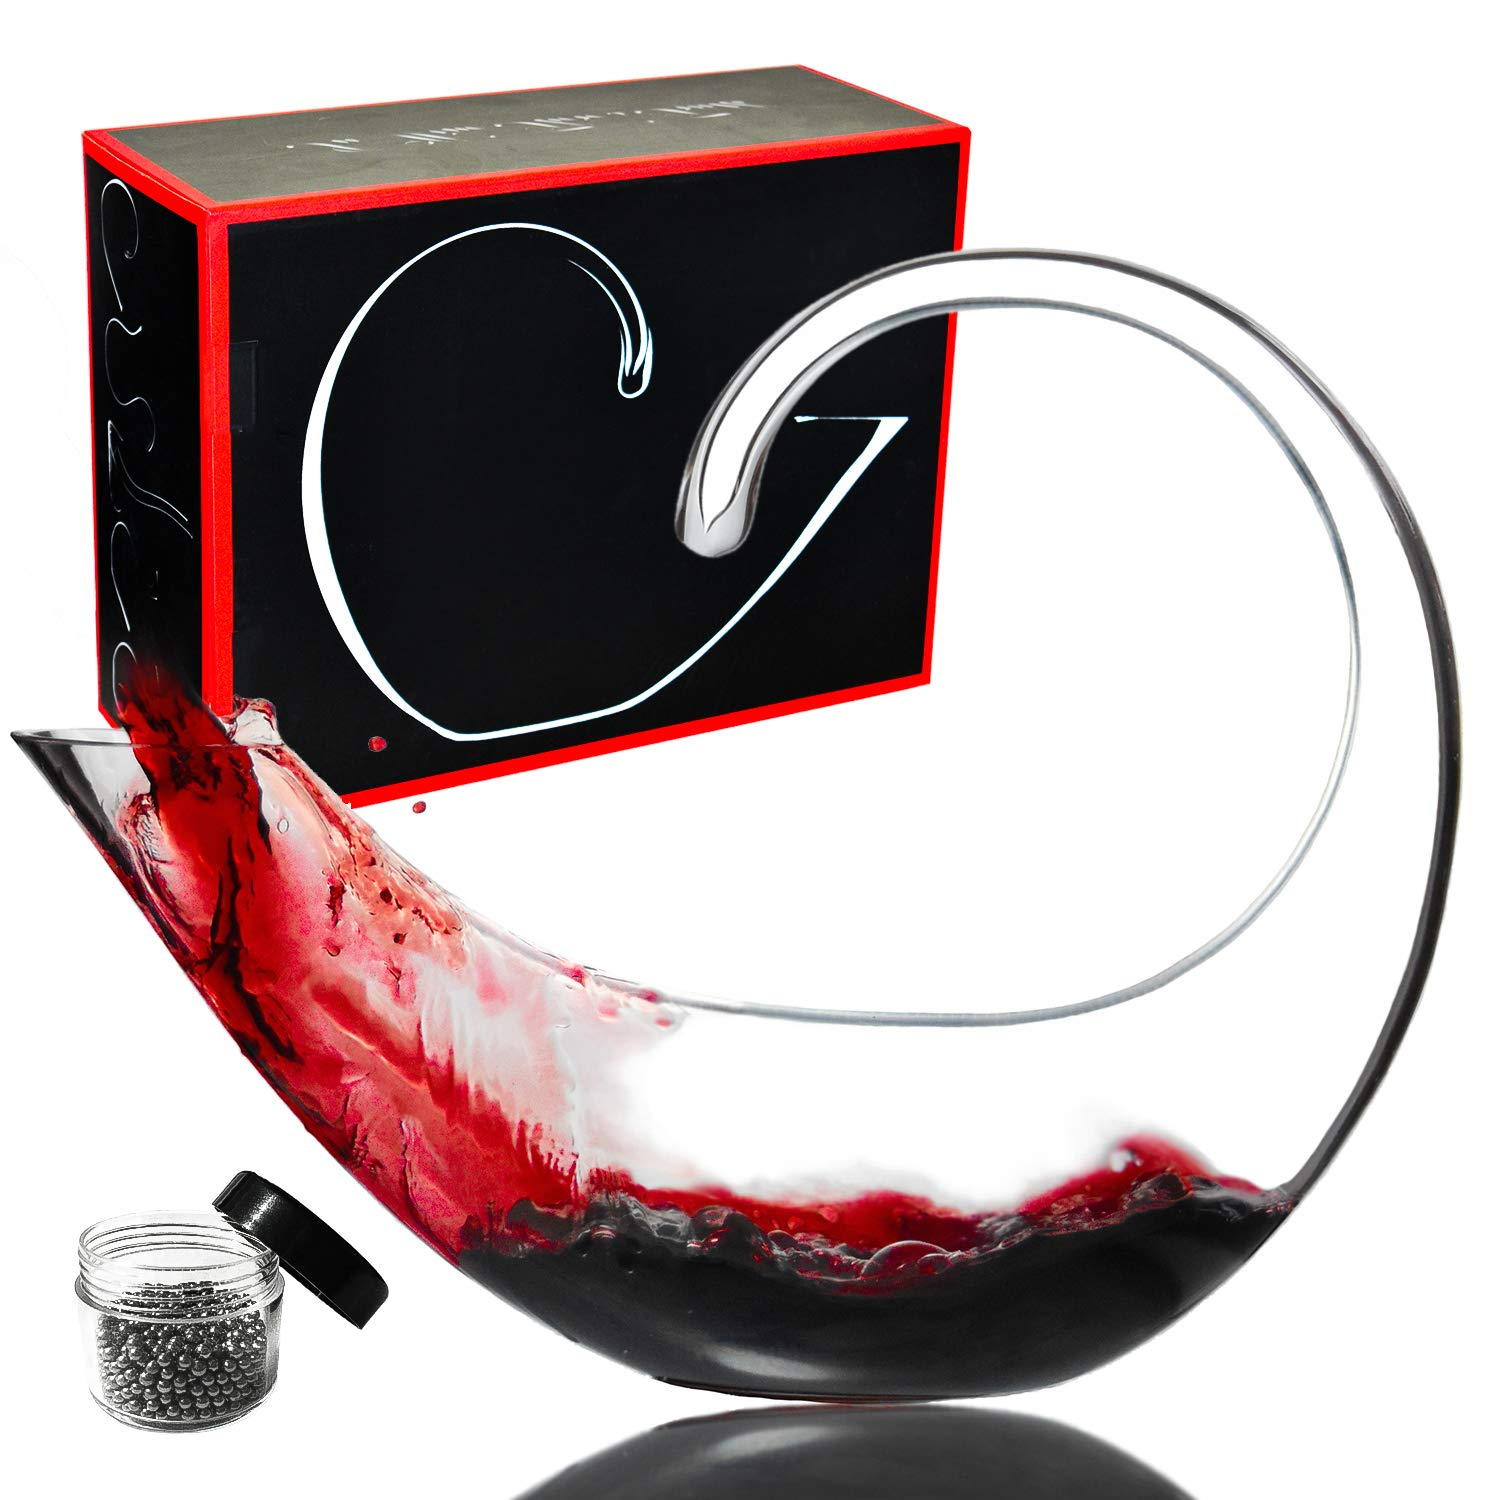 Le Sens Amazing Home Scorpion Wine Decanter 100% Hand Blown Lead-free Crystal Glass with Cleaning Beads, Red Wine Carafe, Wine Gift, Wine Accessories by Le Sens Amazing Home